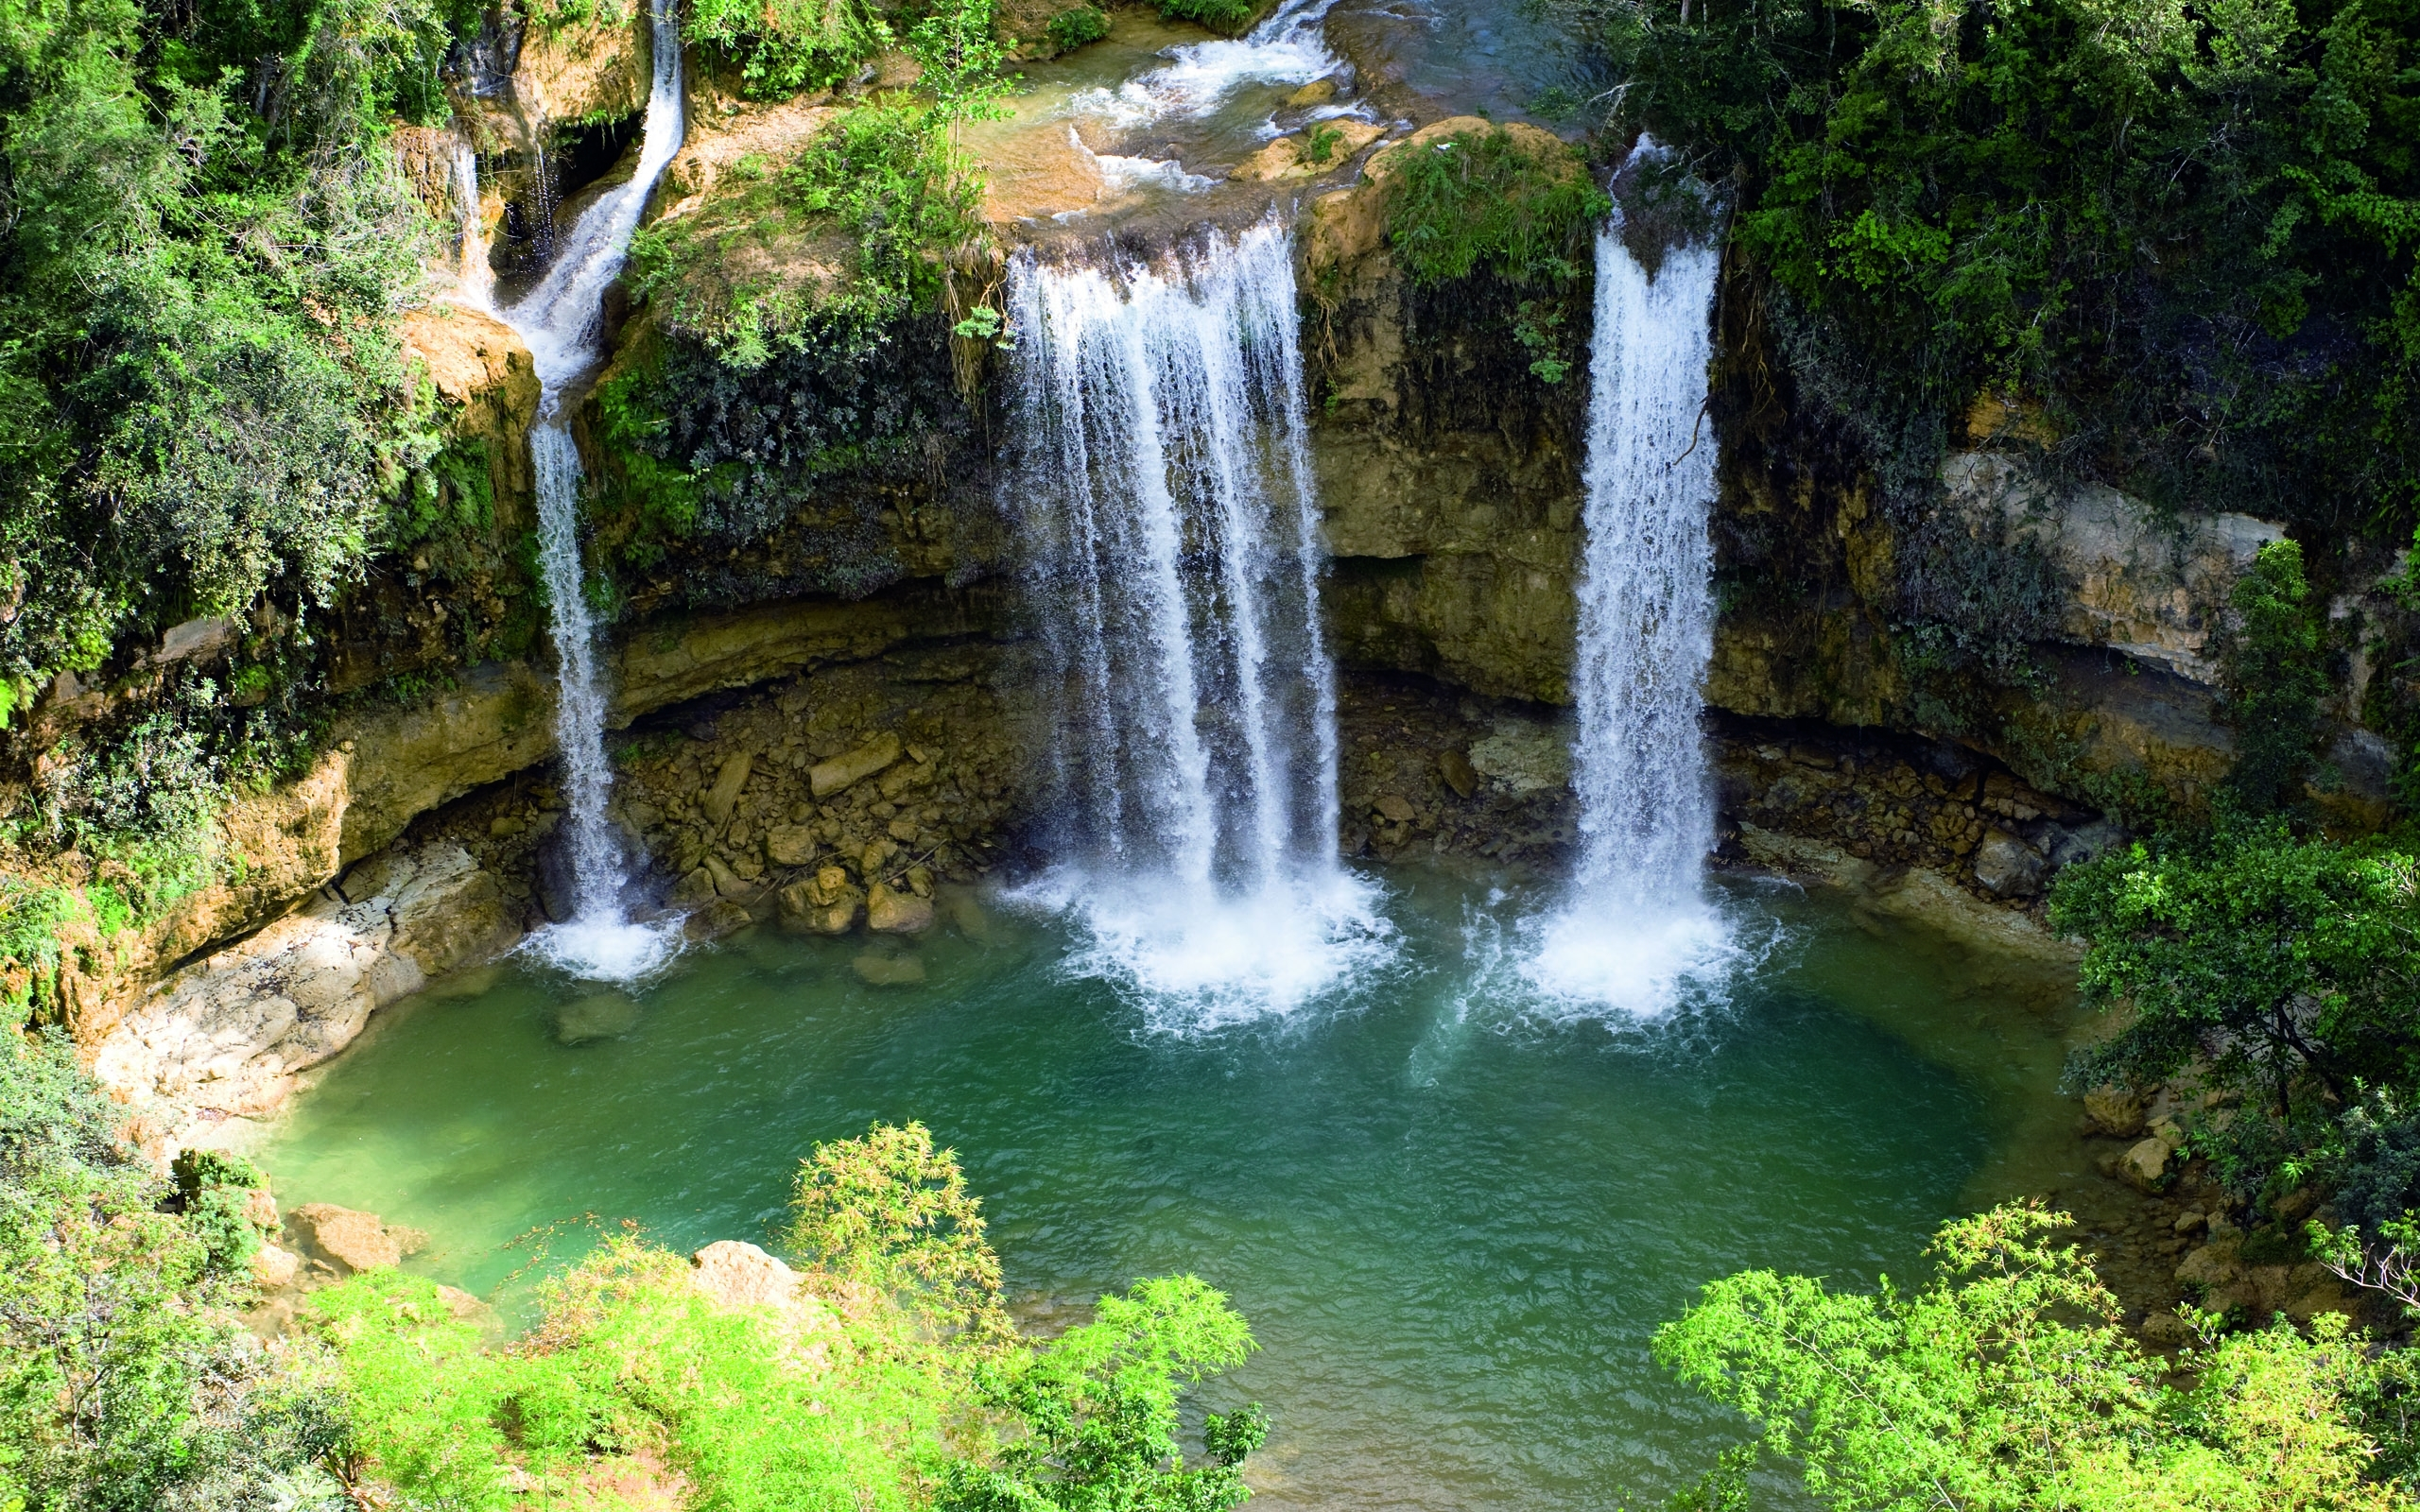 30531 download wallpaper Waterfalls, Landscape screensavers and pictures for free